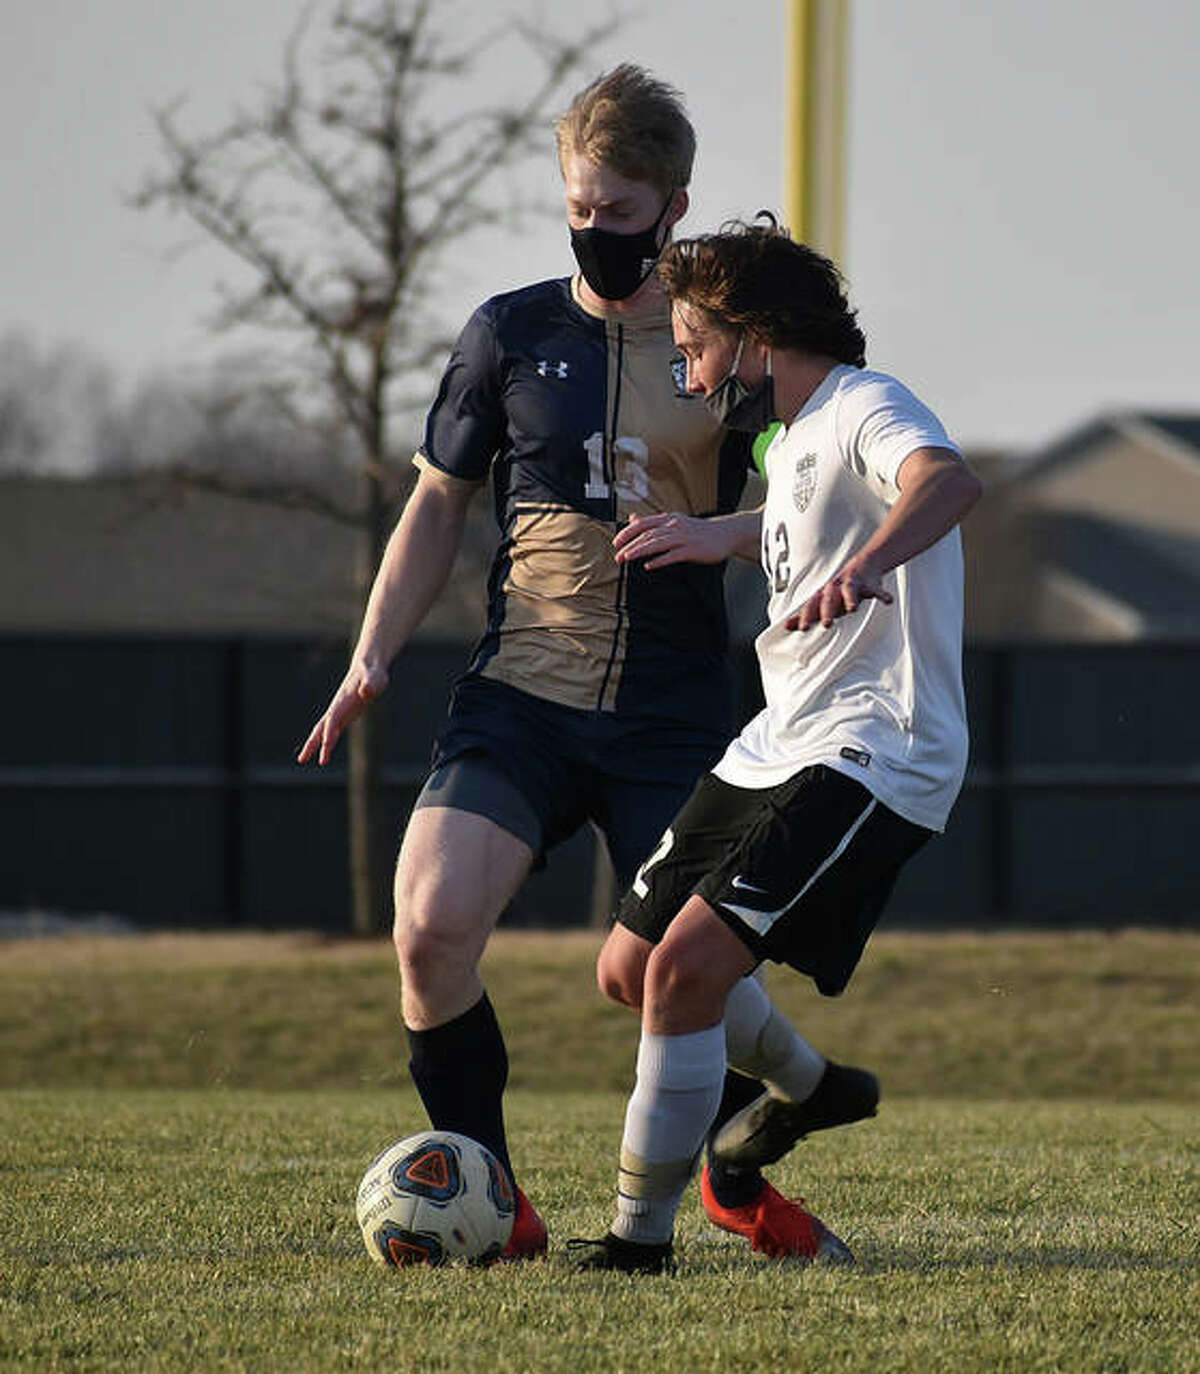 Father McGivney midfielder Matthew Gierer battles for a 50-50 ball at midfield during the first half of the Griffins' season opener against Triad on March 9.